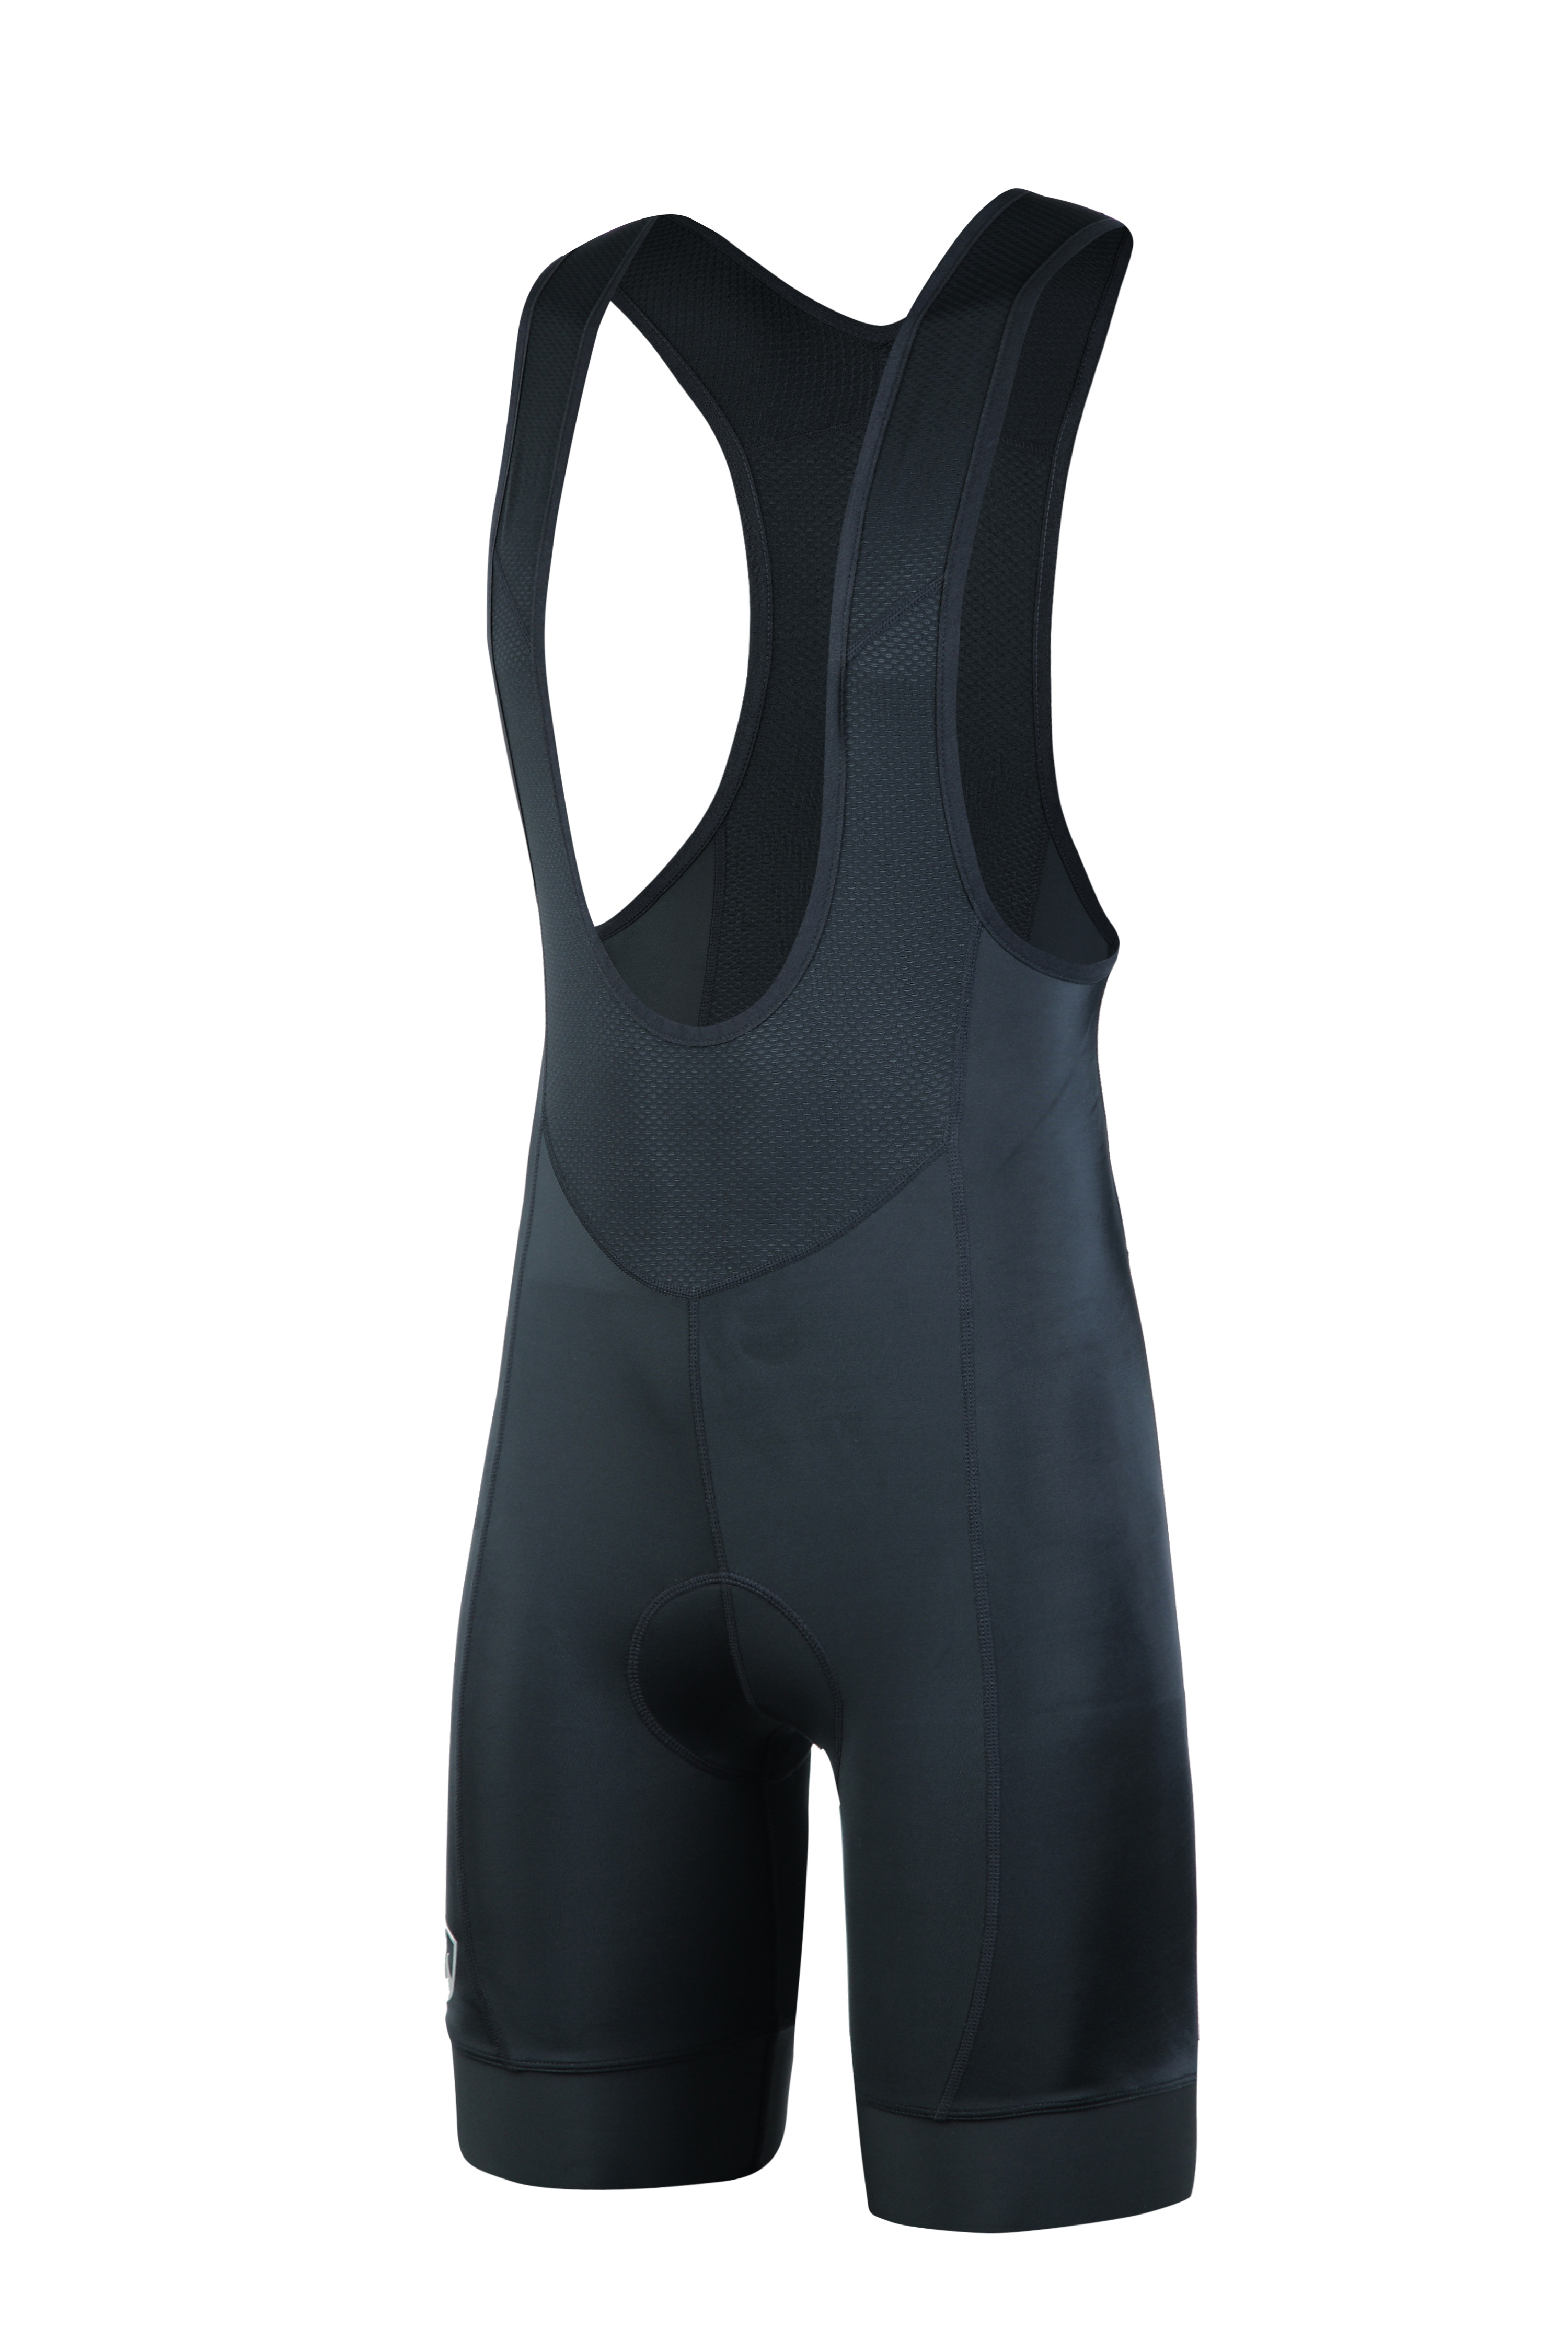 Men's knitted cycling BibShorts.